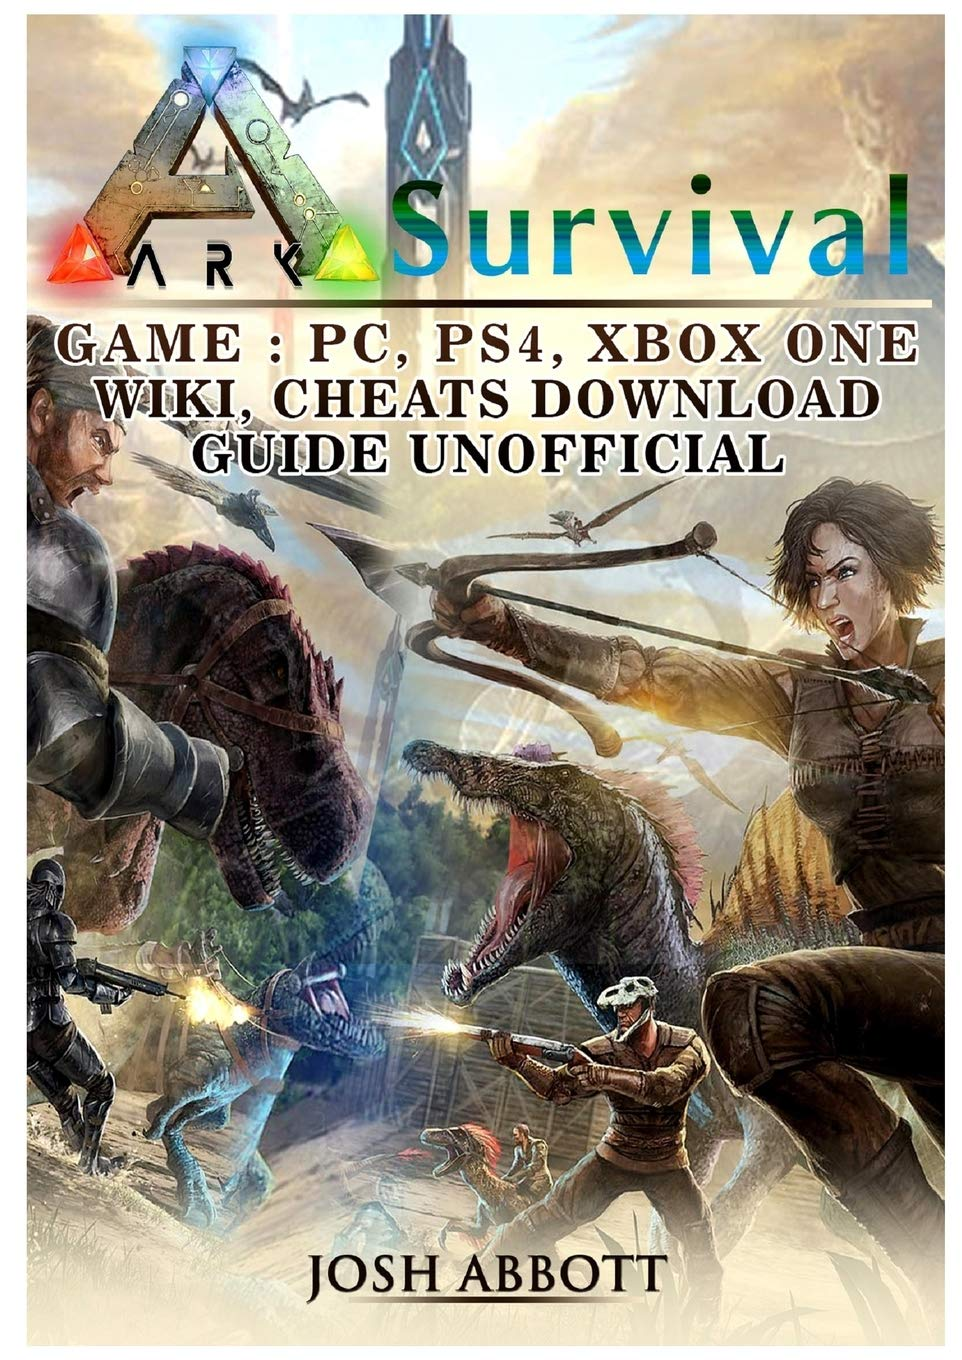 Ark Survival Game, PC, PS4, Xbox One, Wiki, Cheats, Download Guide ...